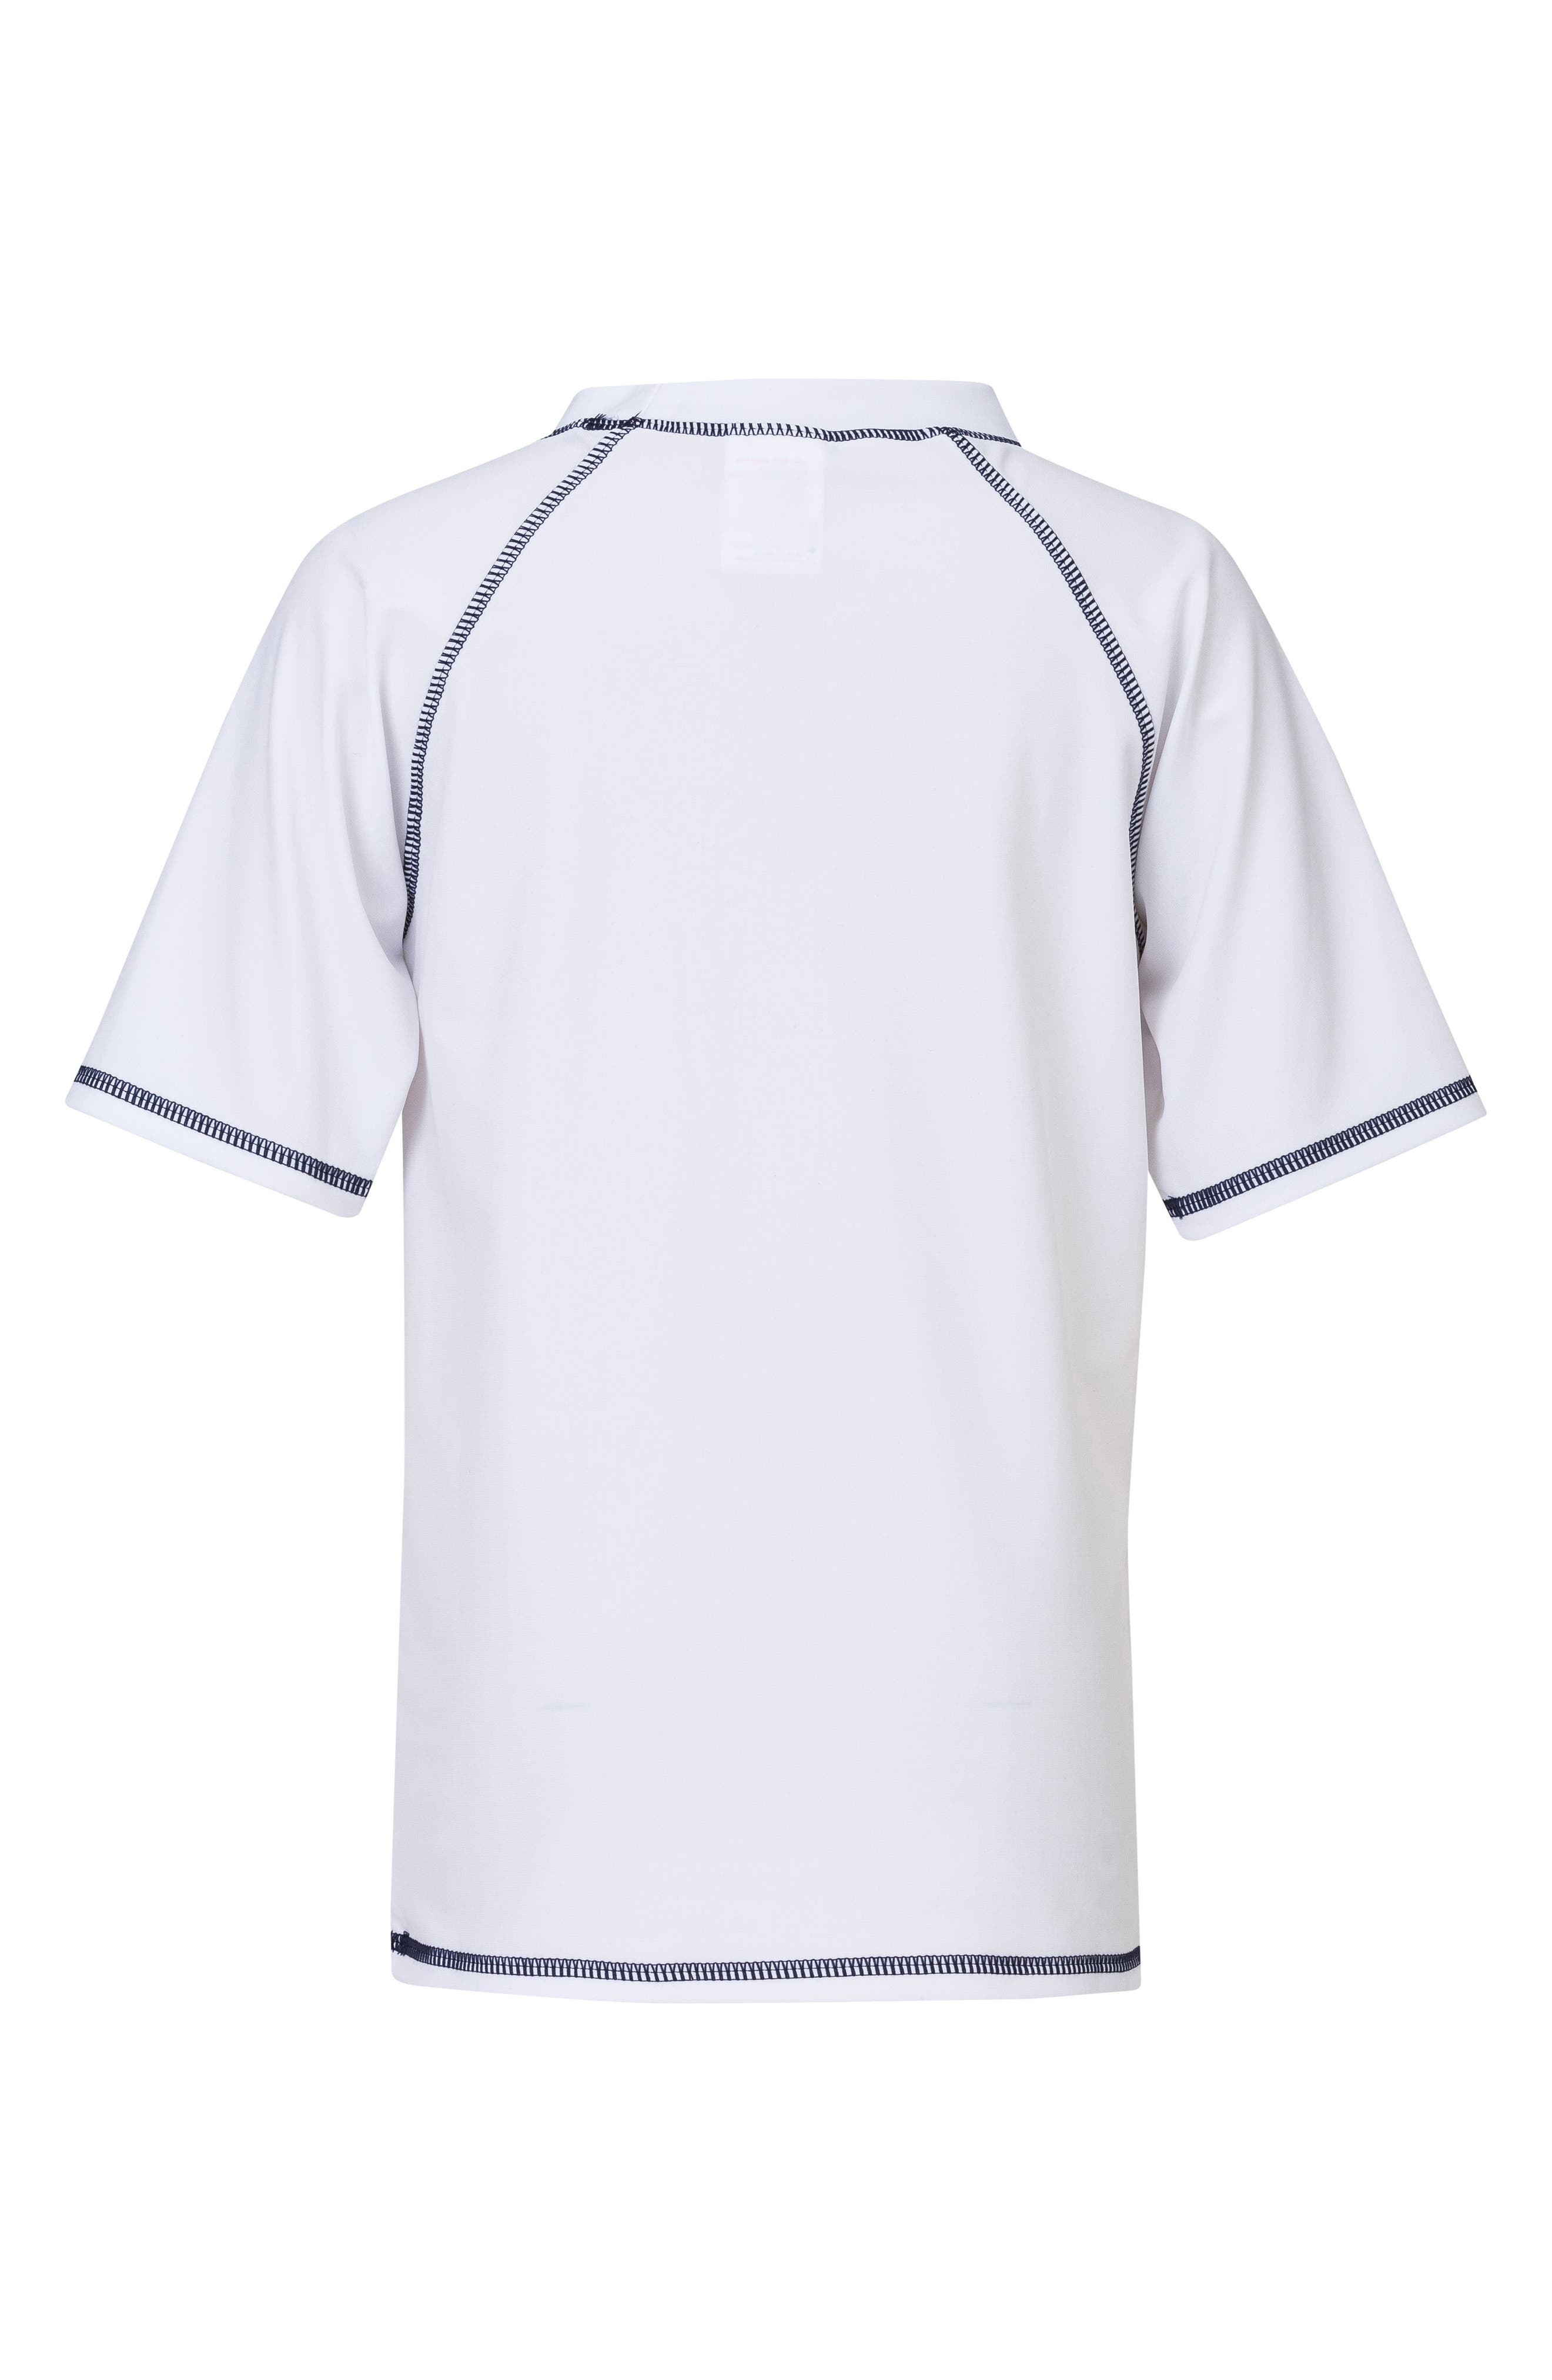 Raglan Short Sleeve Rashguard,                             Alternate thumbnail 2, color,                             White/ Navy